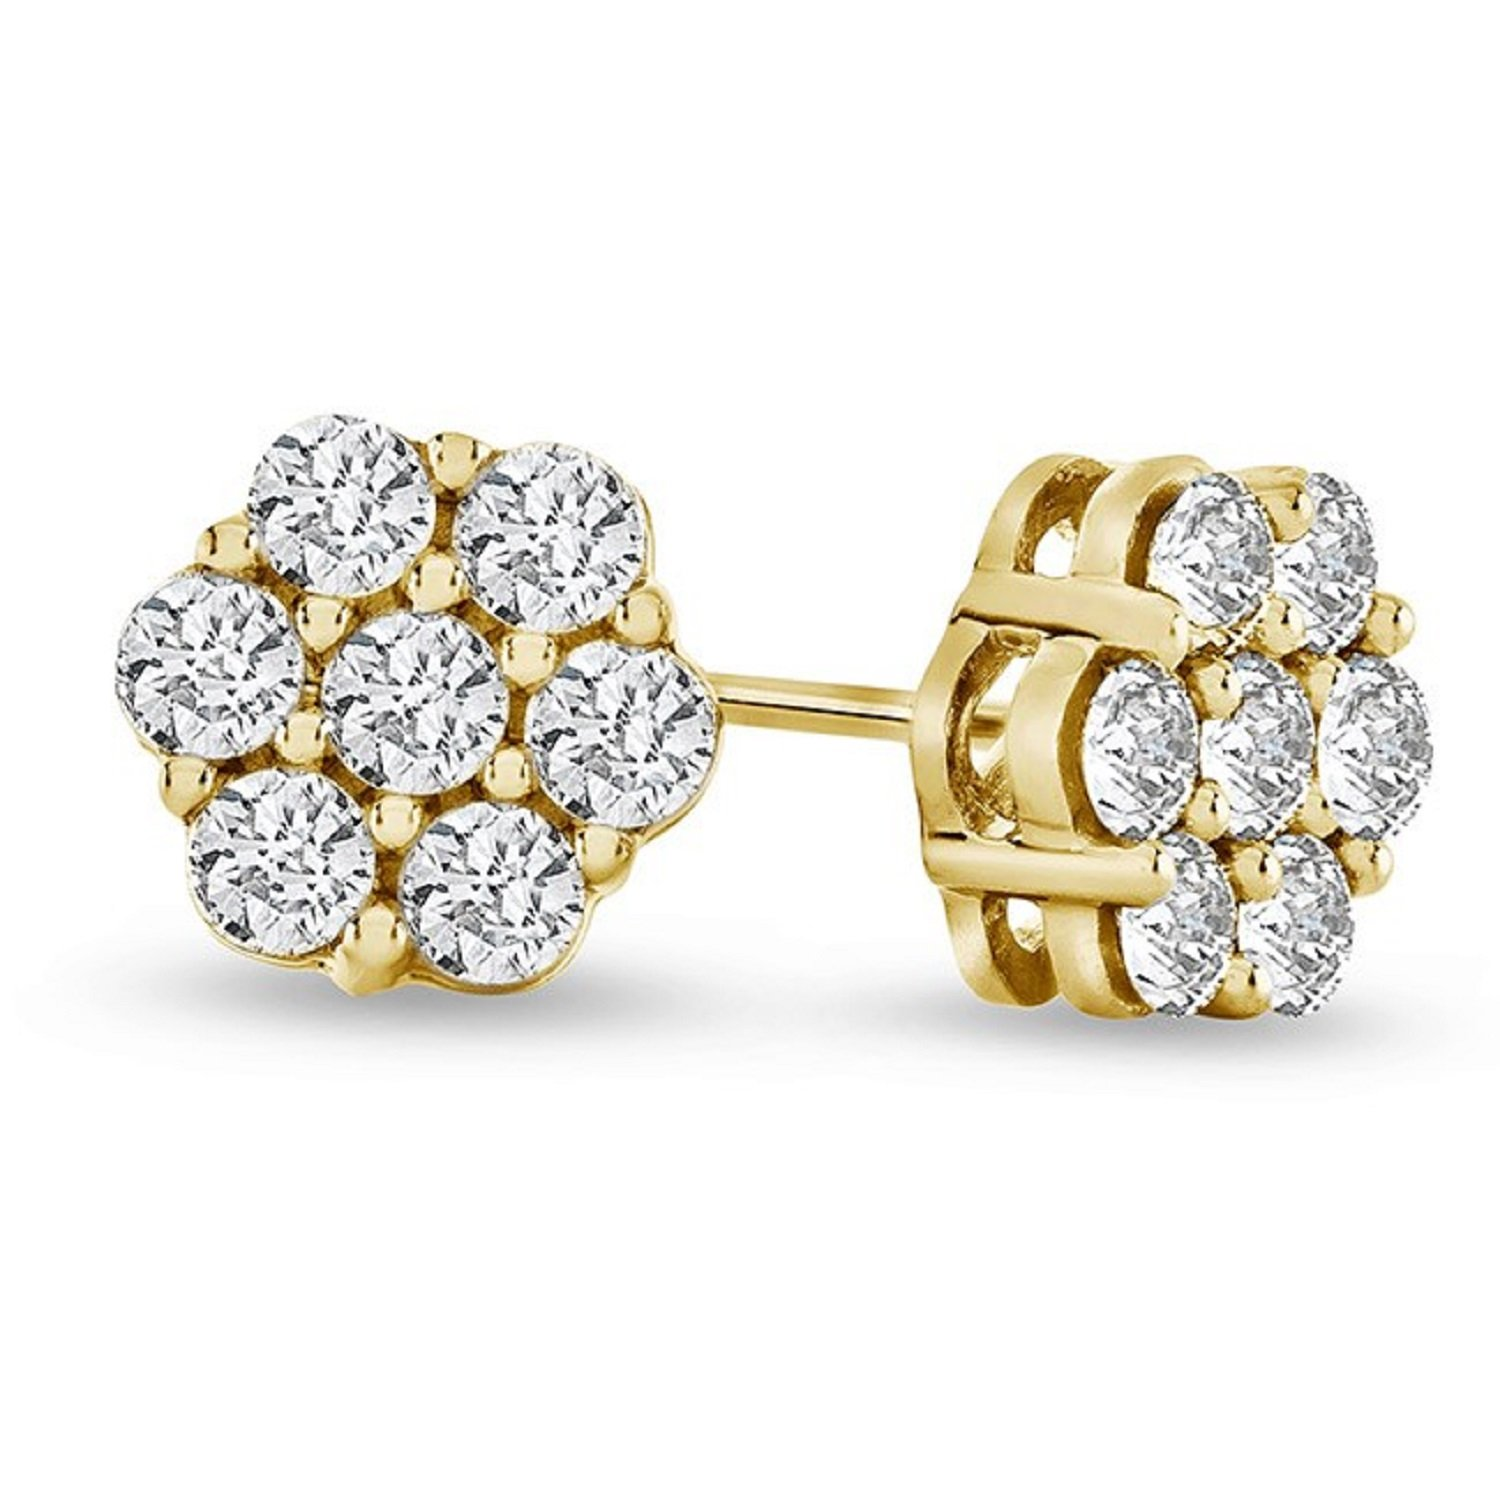 0.25ctw Cluster Natural Diamond Round Cut Flower Studs Earrings 14K Yellow Gold (1/4 ctw)